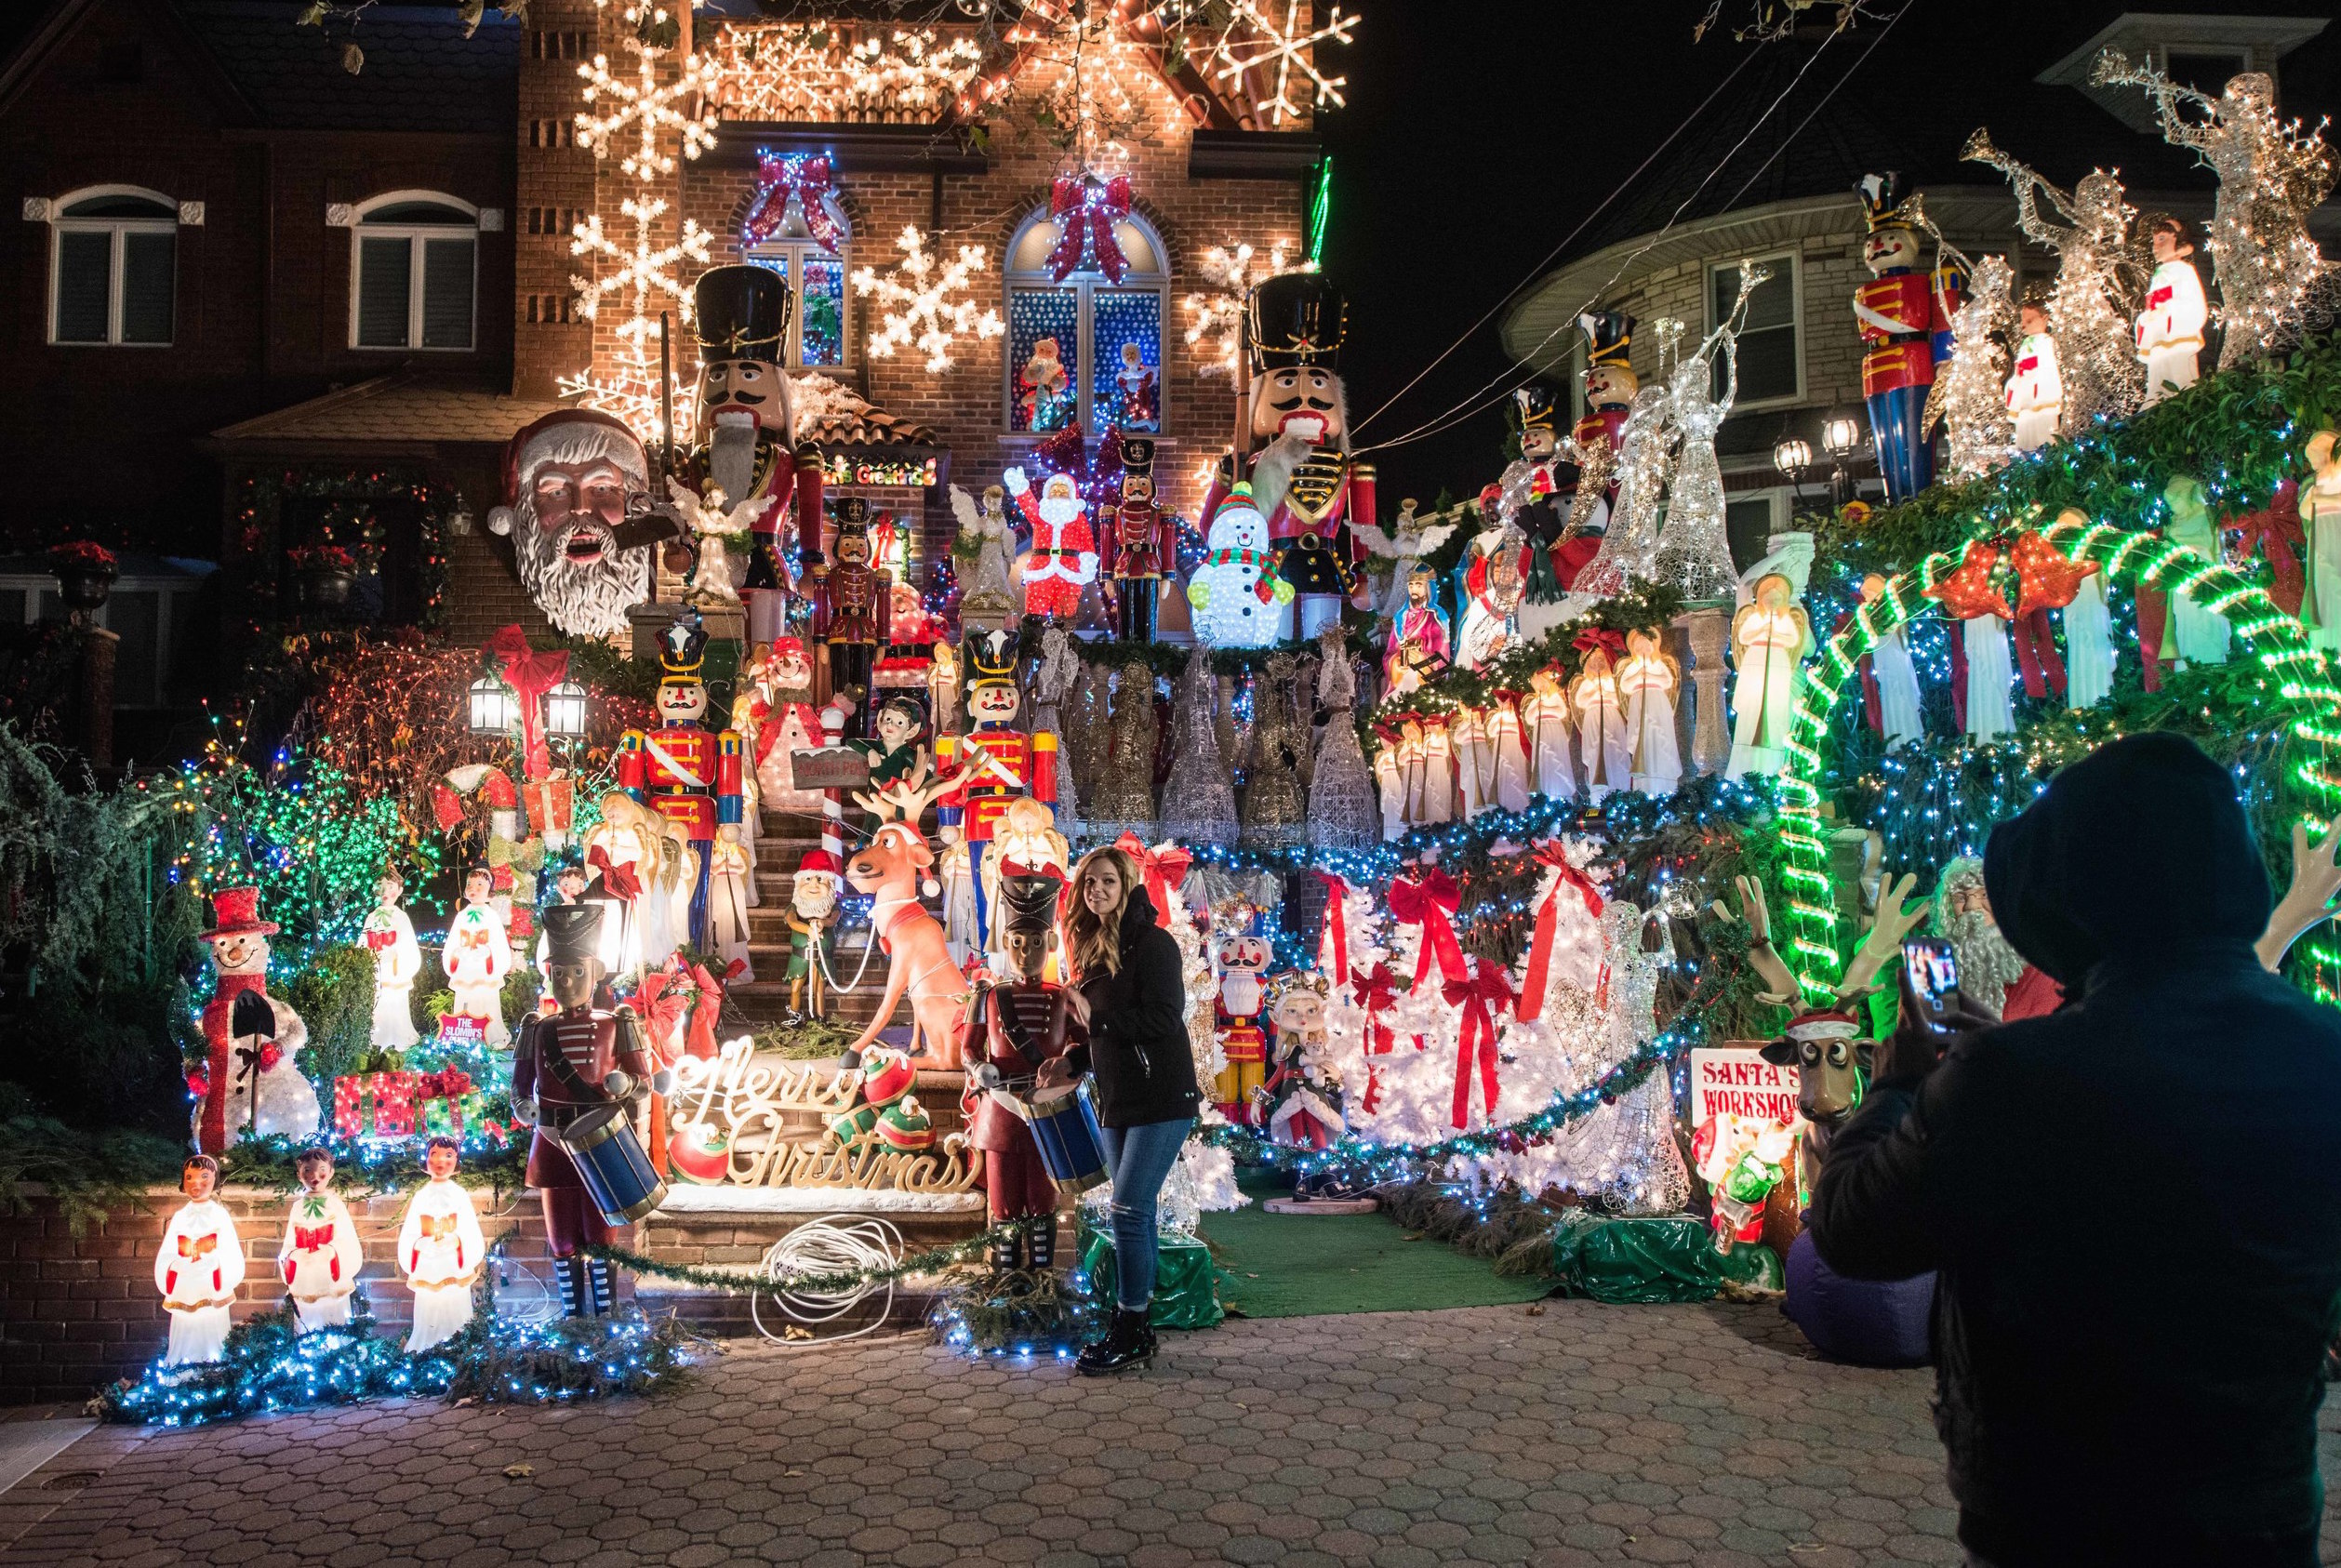 Dyker heights christmas lights 2017 guide and how to get there solutioingenieria